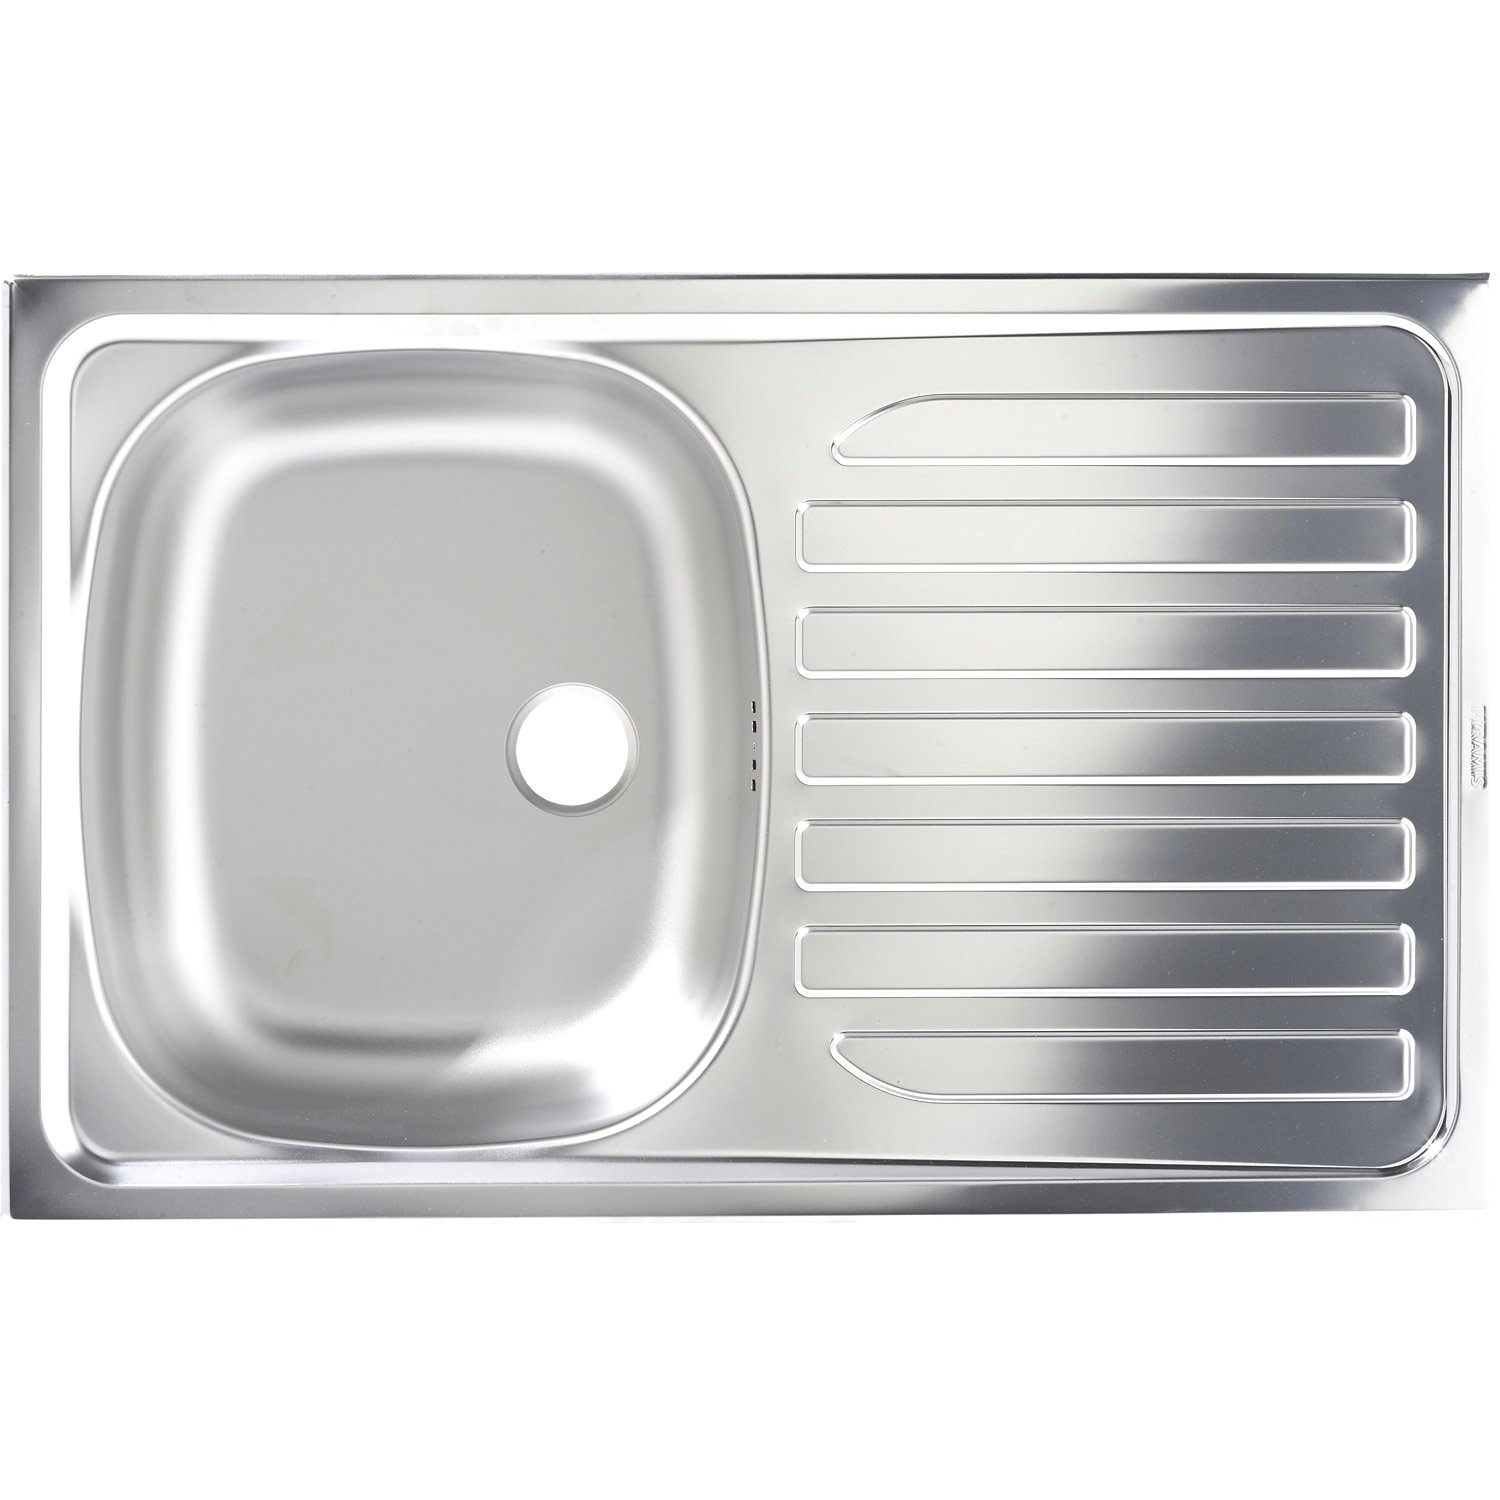 Evier Inox Nid D Abeille 1 Bac Franke Pearlfection Fr